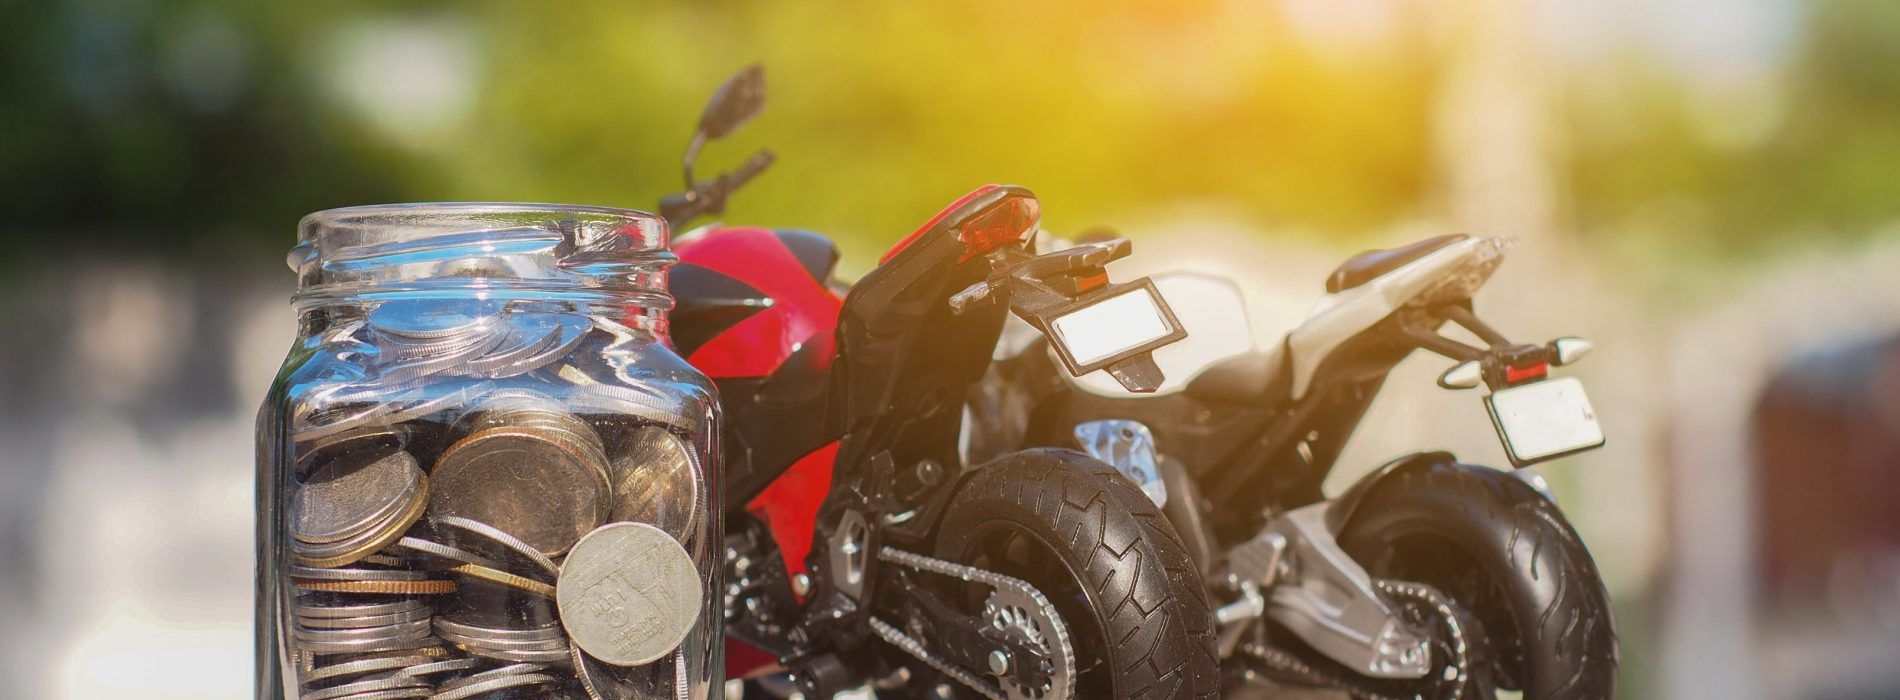 Buy motorcycle from the sale to save money: